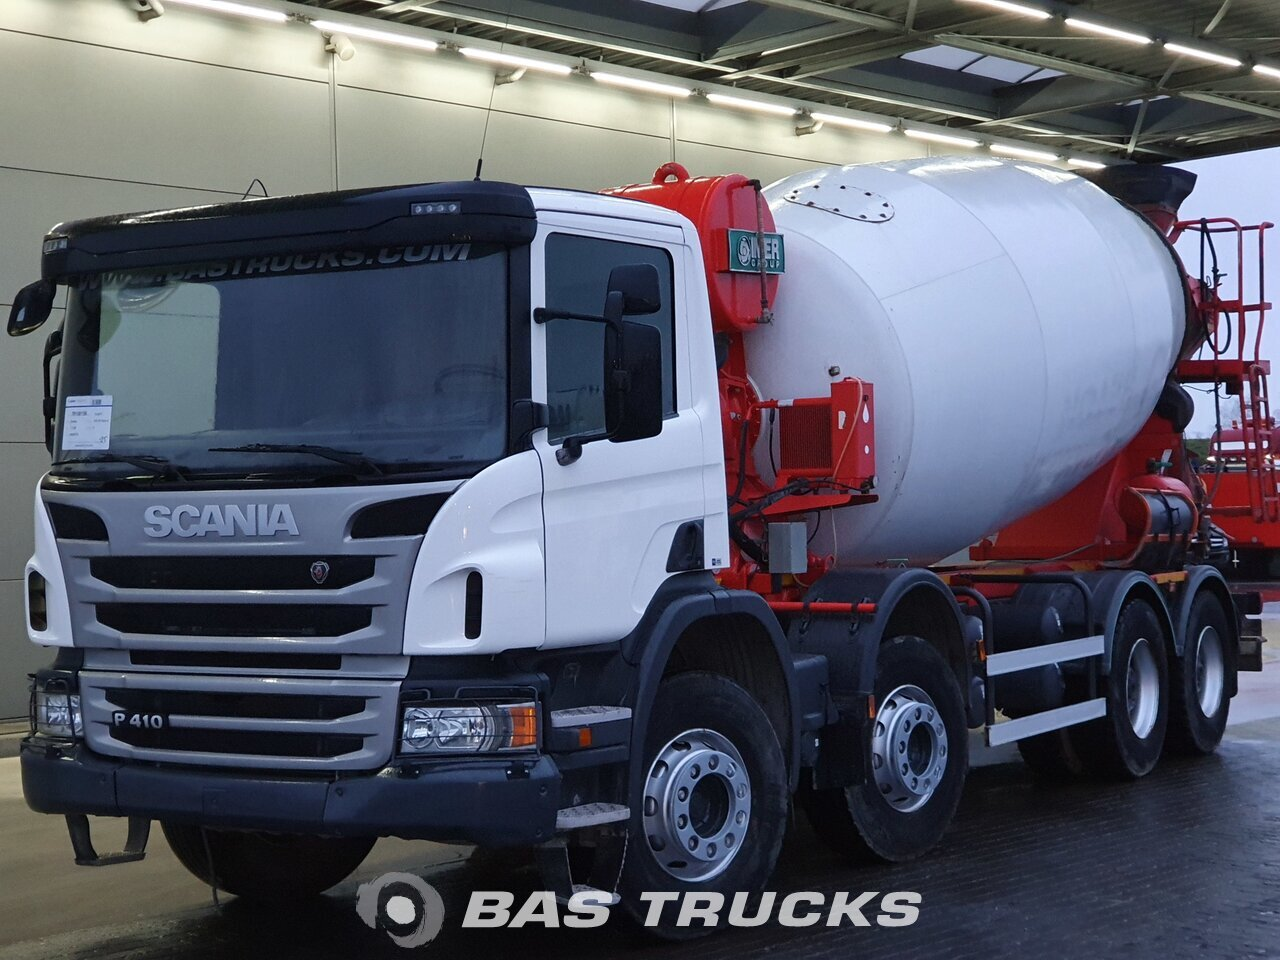 For sale at BAS Trucks: Scania P410 8X4 10/2017